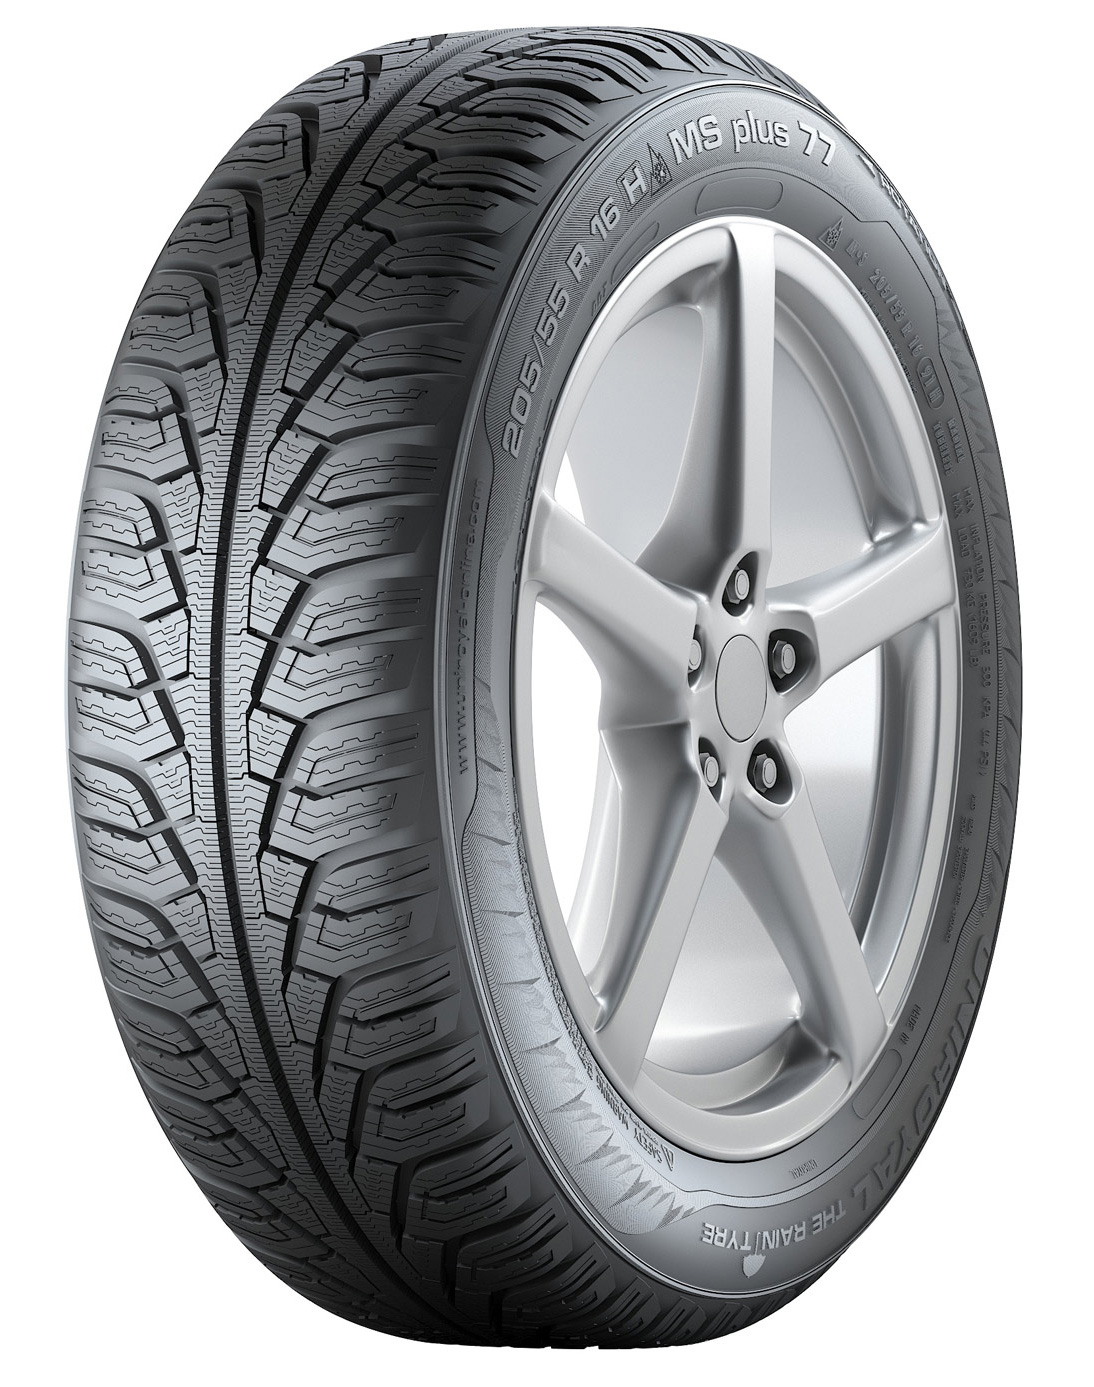 Buy cheap Uniroyal MS Plus 77 tyres from your local Setyres